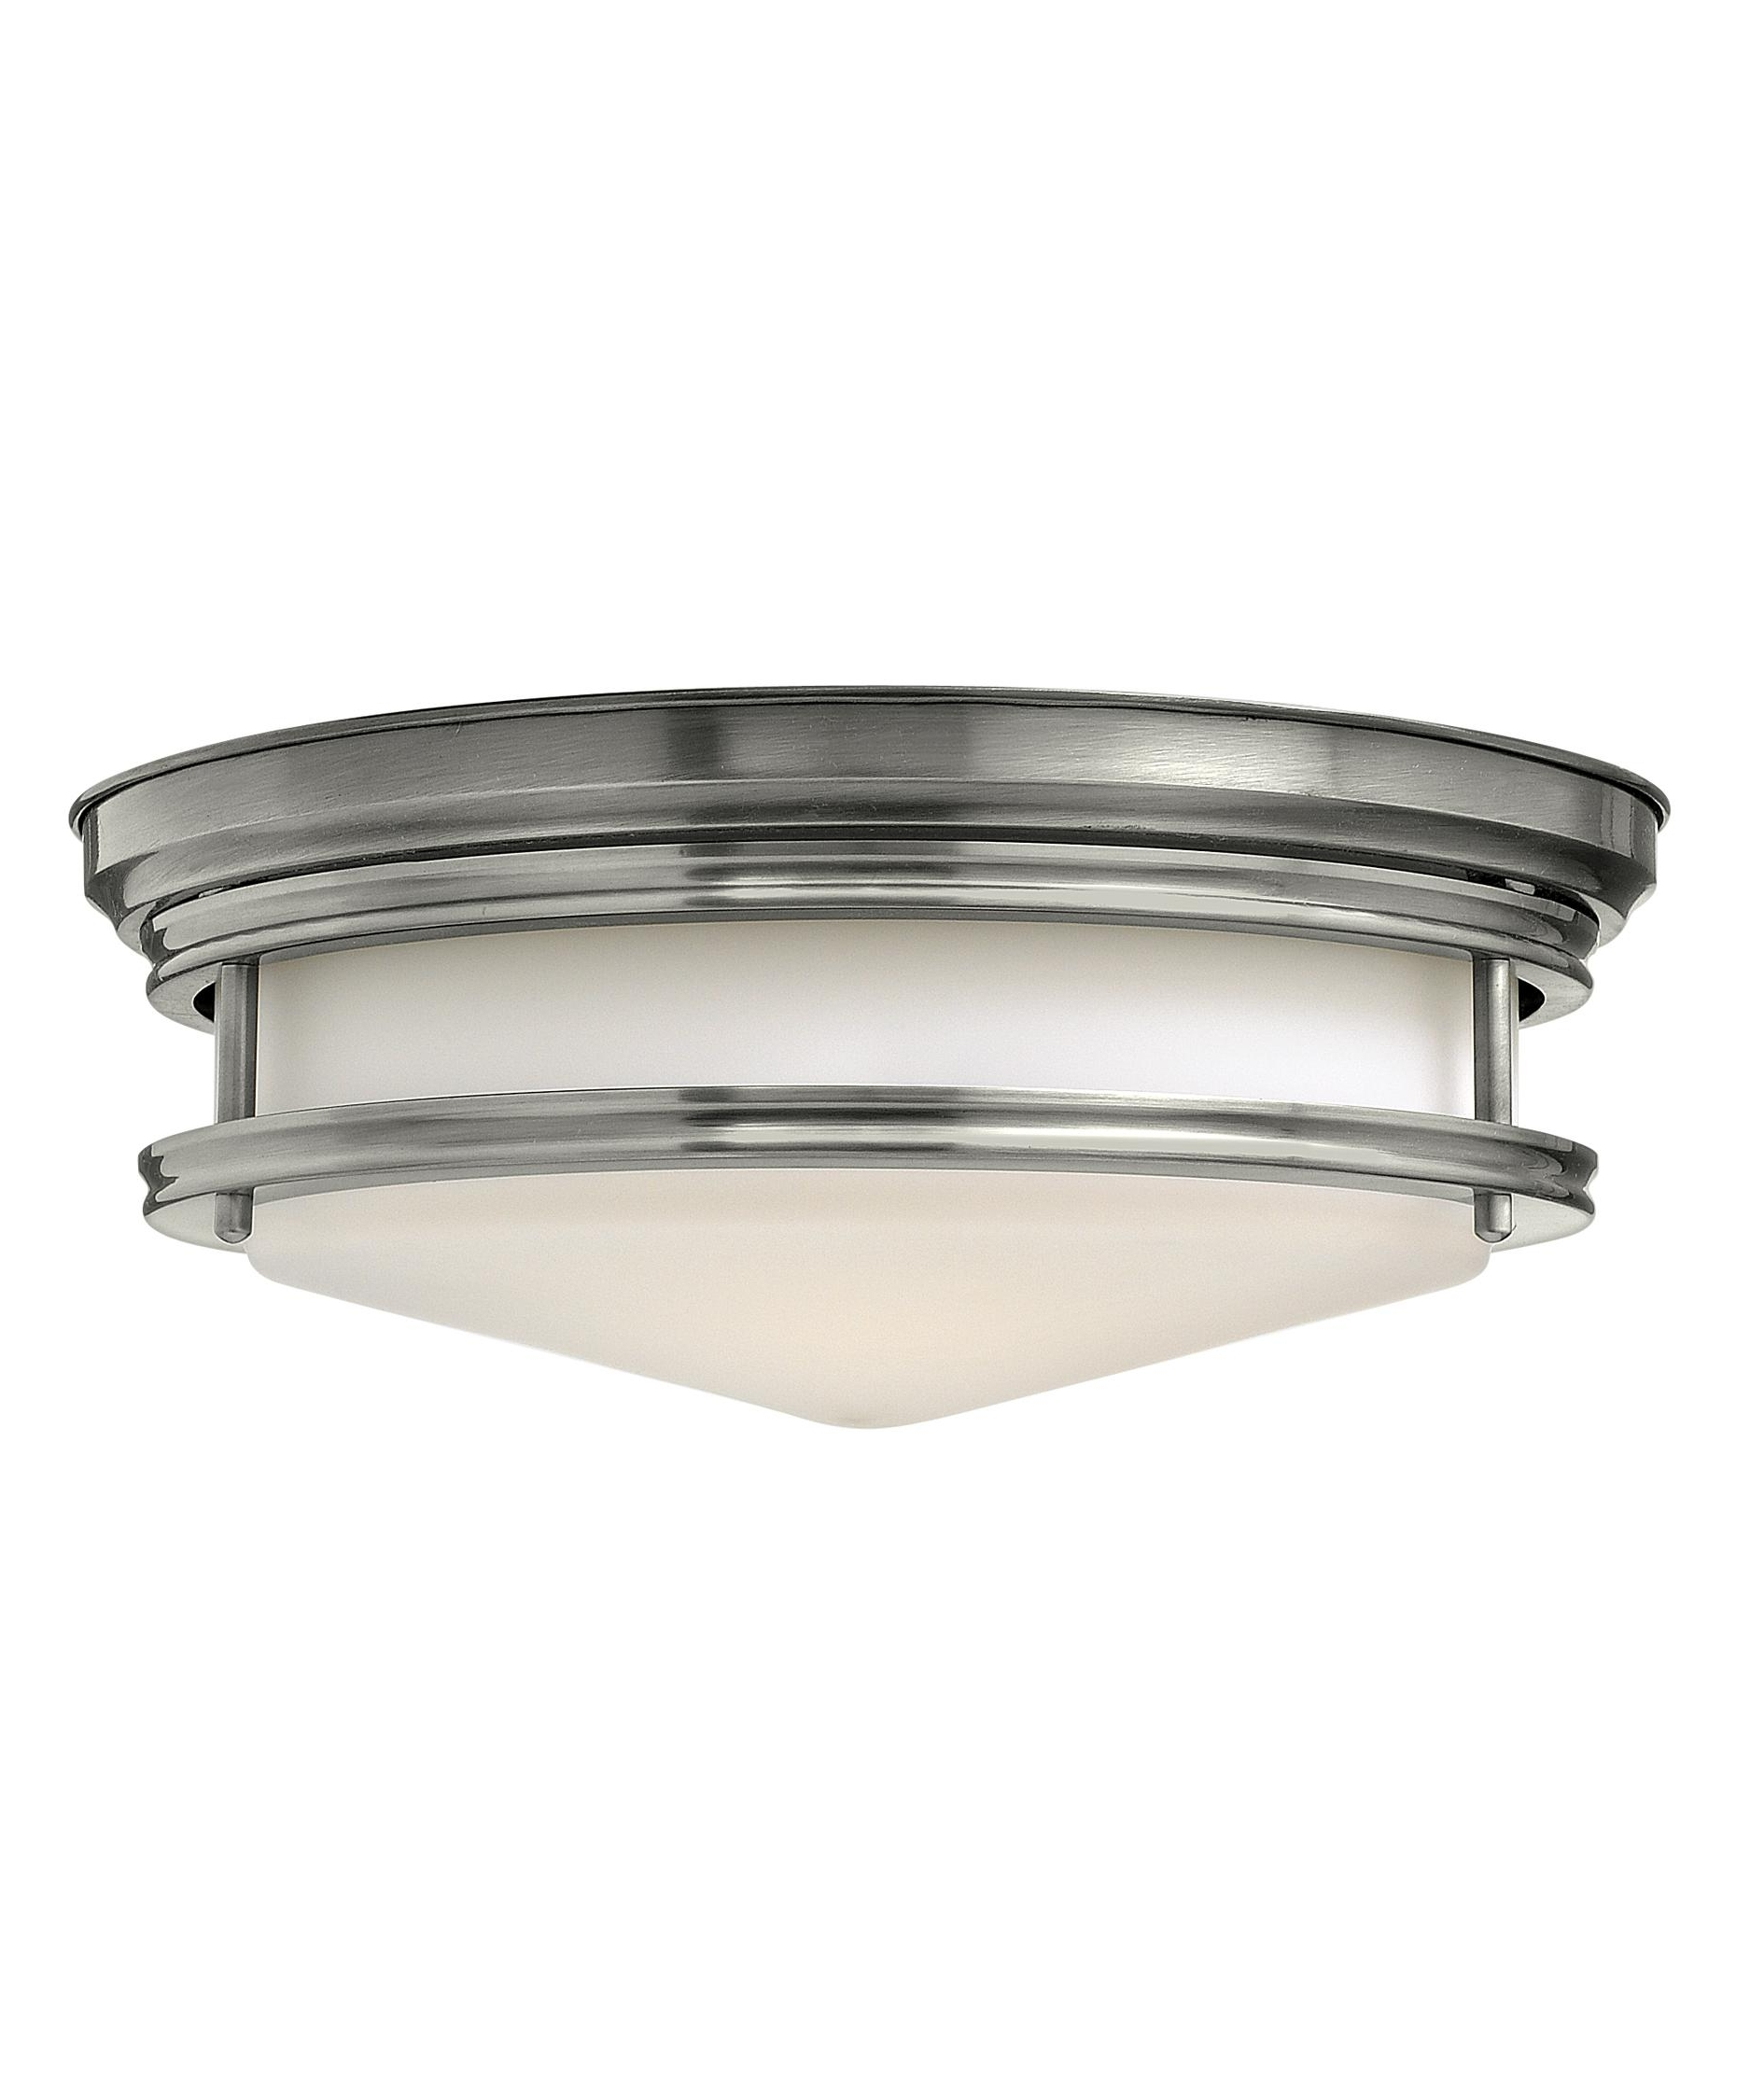 Popular Hinkley Lighting 3301 Hadley 14 Inch Wide Flush Mount (View 19 of 20)